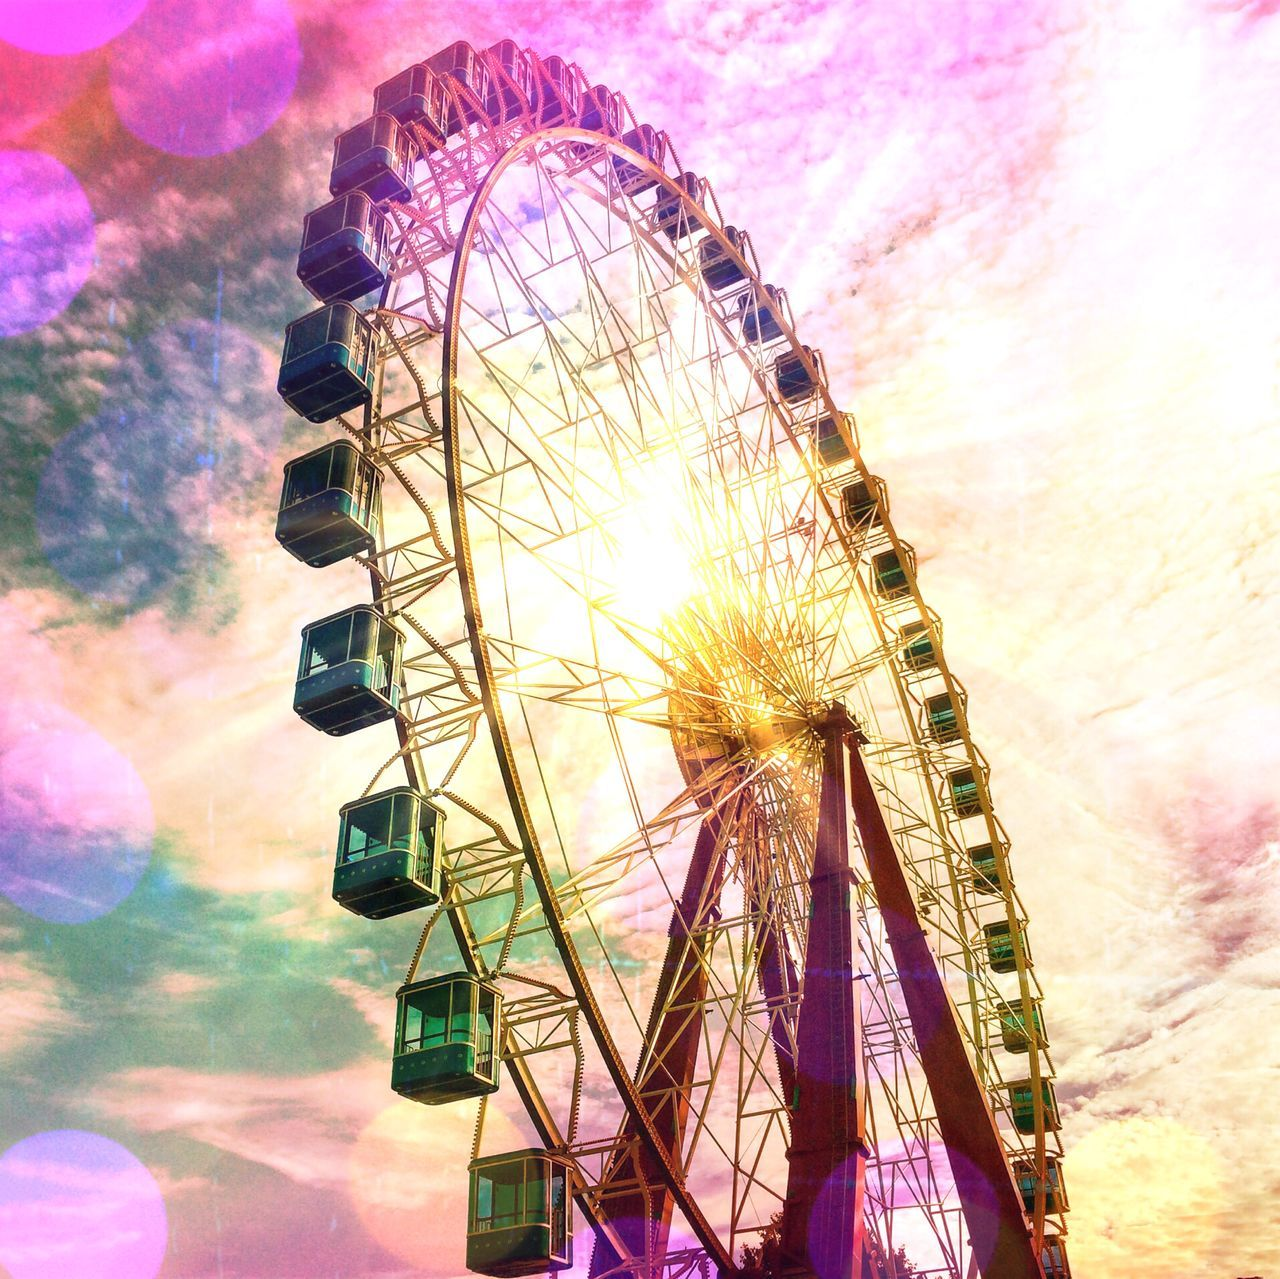 amusement park, arts culture and entertainment, ferris wheel, amusement park ride, fairground, low angle view, big wheel, no people, outdoors, sky, traveling carnival, day, multi colored, carousel